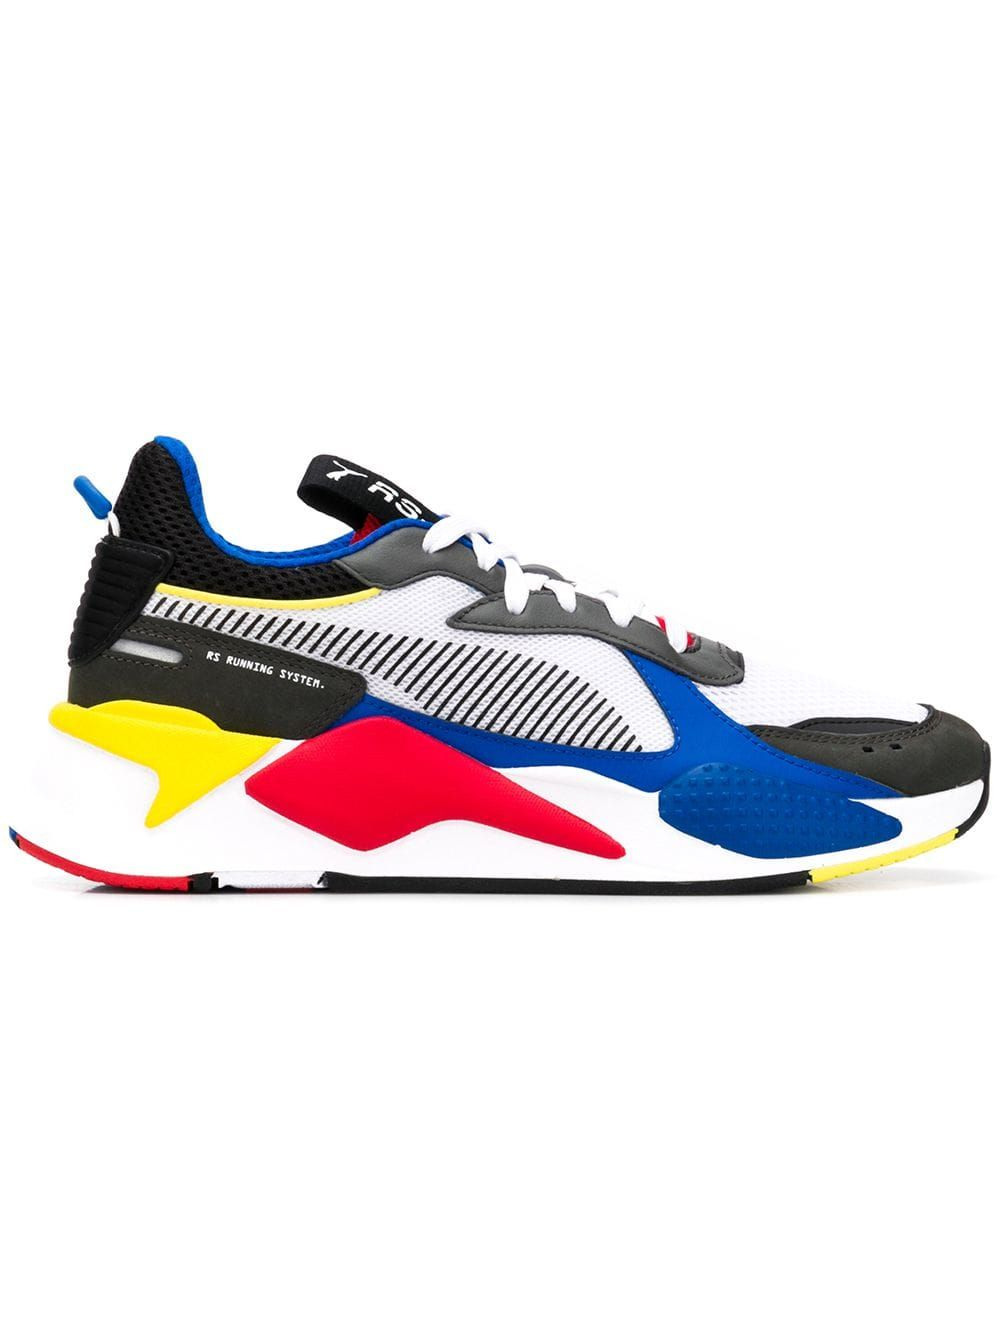 Puma Running System Sneakers - White